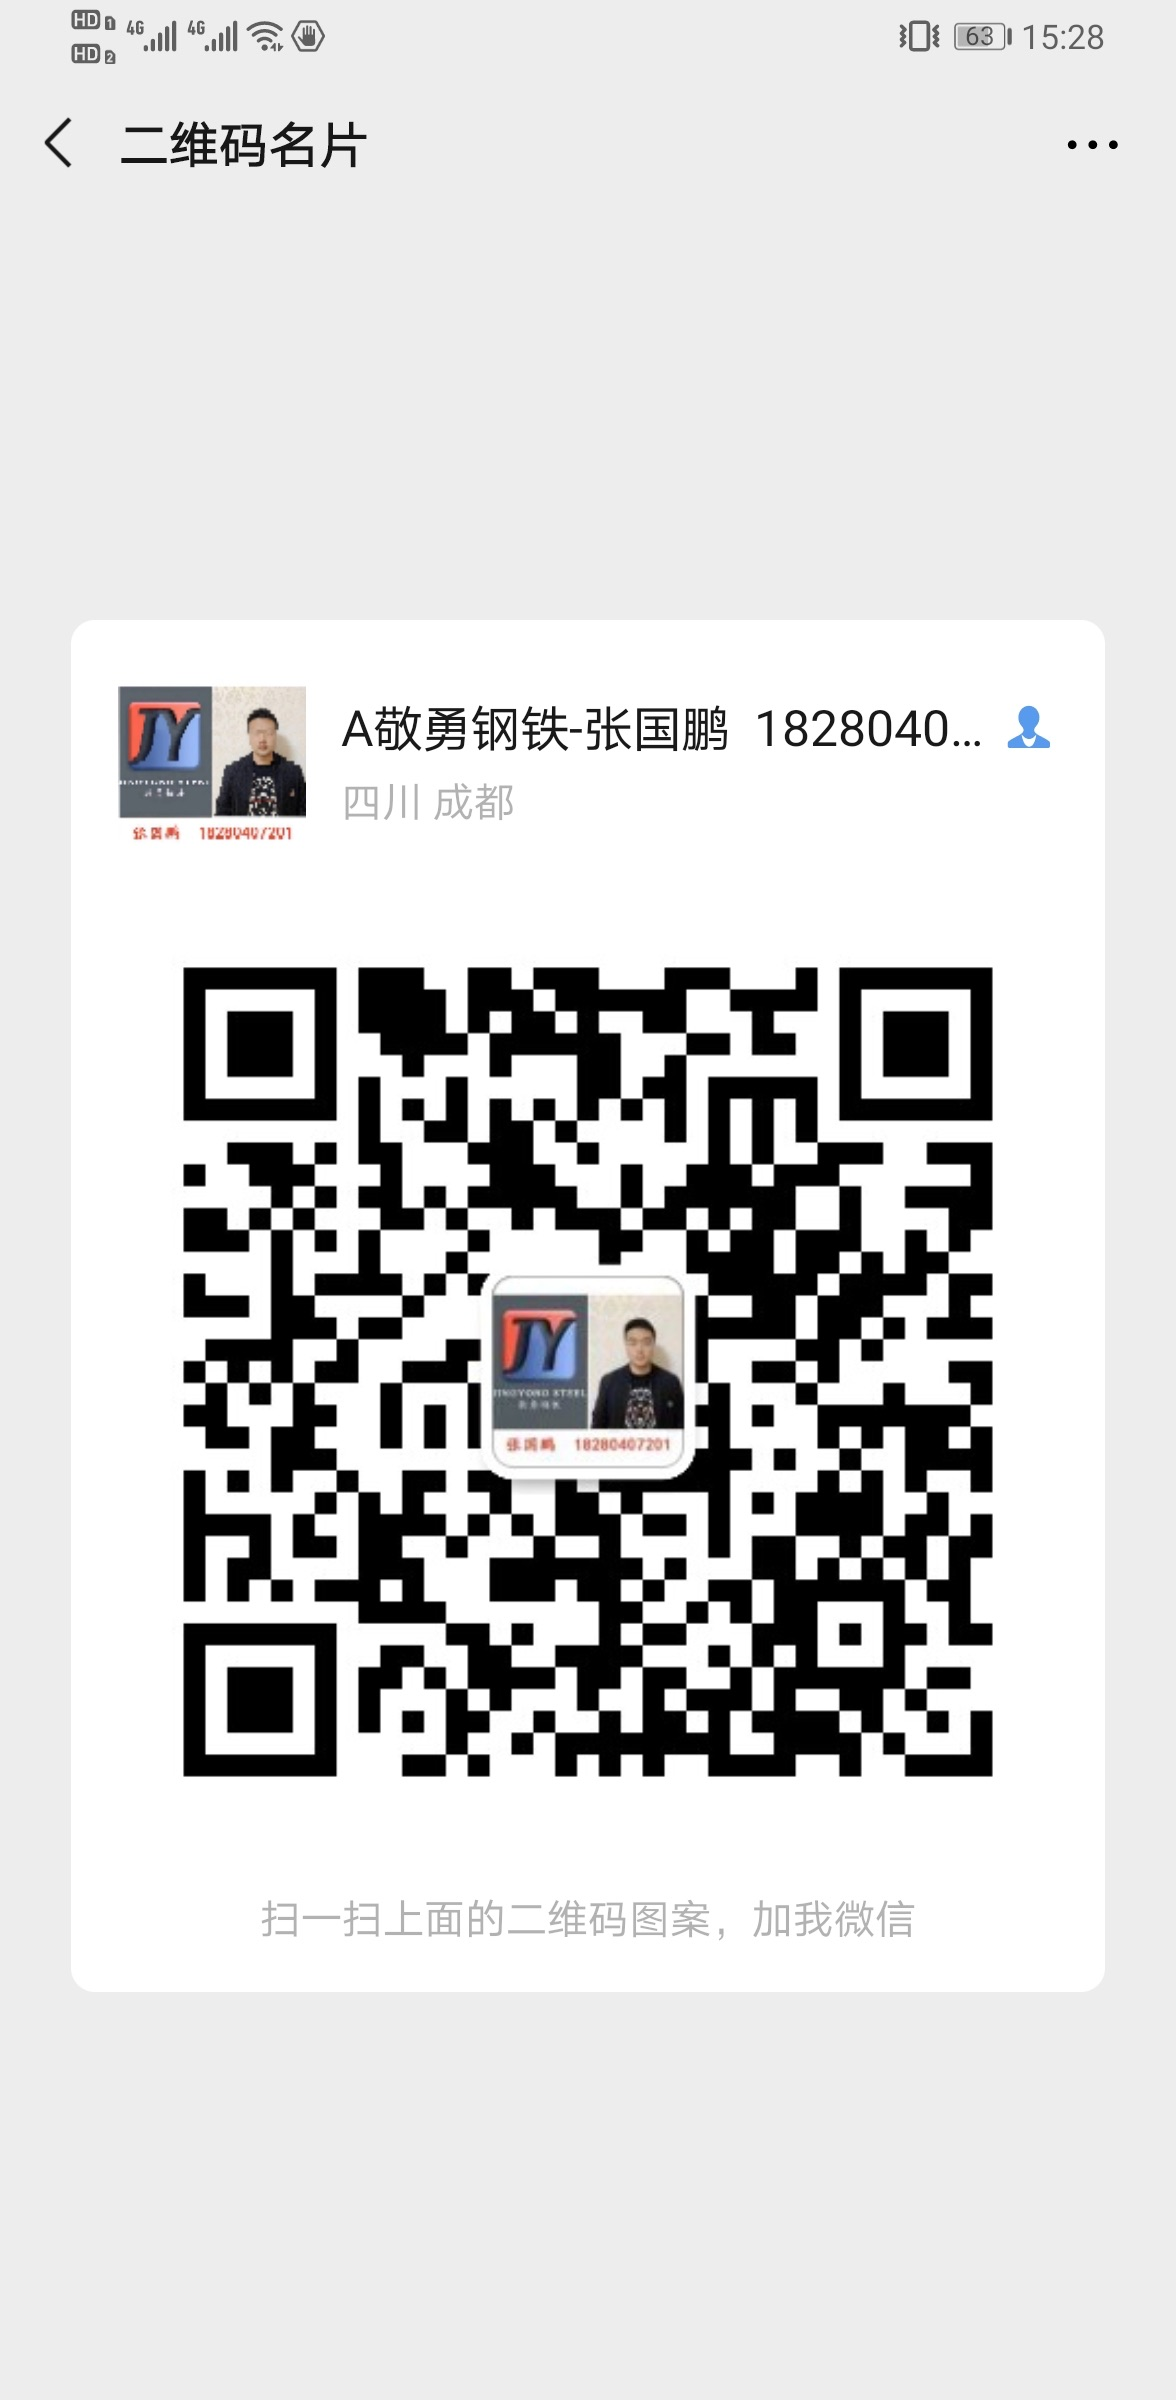 .\..\..\..\..\..\..\AppData\Local\Temp\WeChat Files\1e1cb11e7a53048b77111deef0a31f2d_.jpg